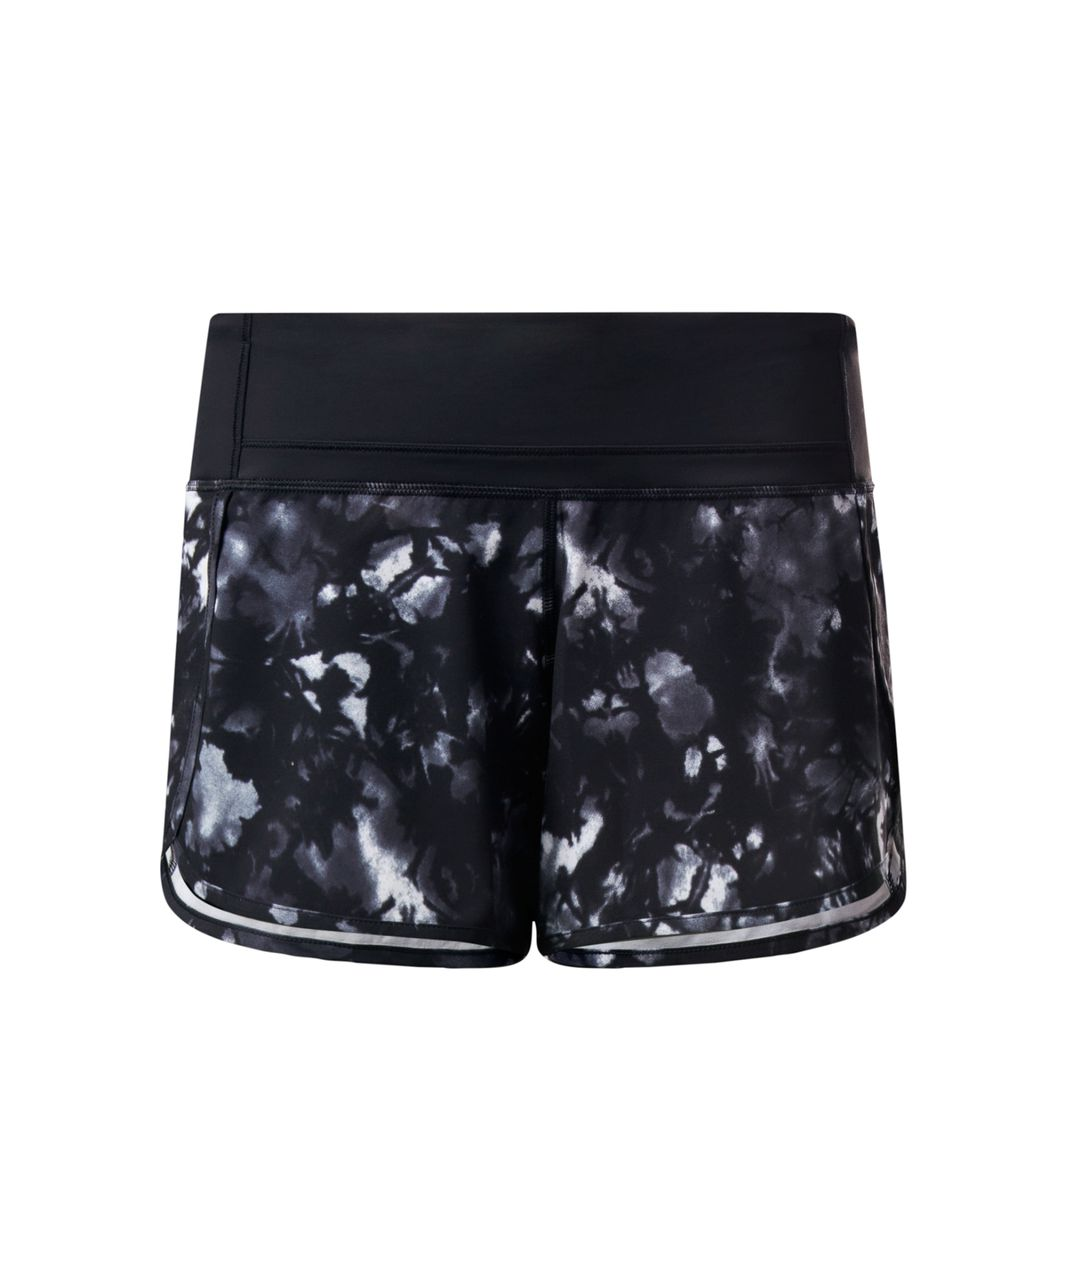 Lululemon Run Times Short - Dusk Dye White Black / Black